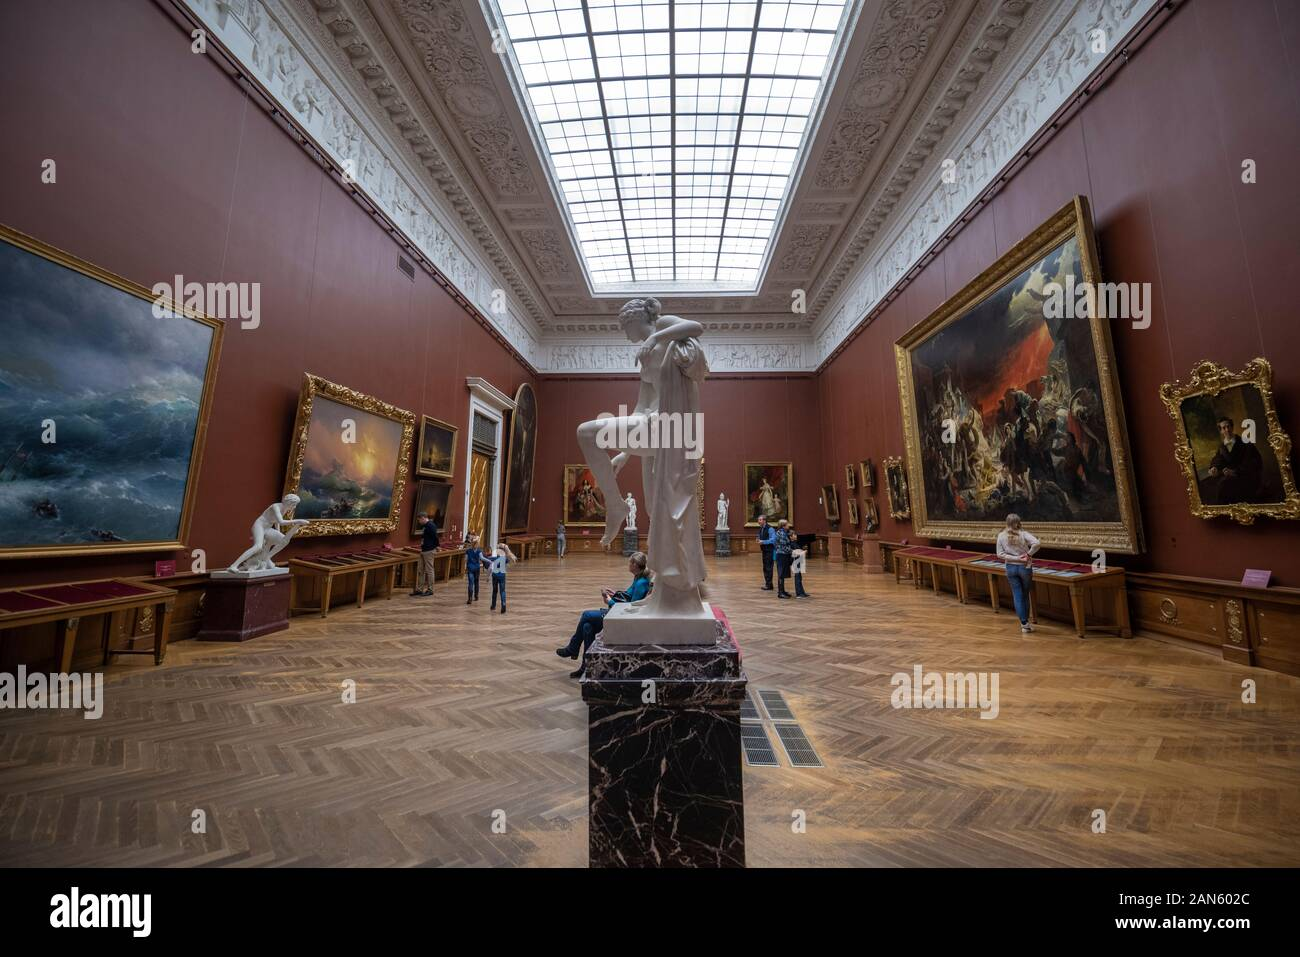 Saint Petersburg Russia Interior Of The State Russian Museum The Museum Is The Largest Depository Of Russian Fine Art Stock Photo Alamy